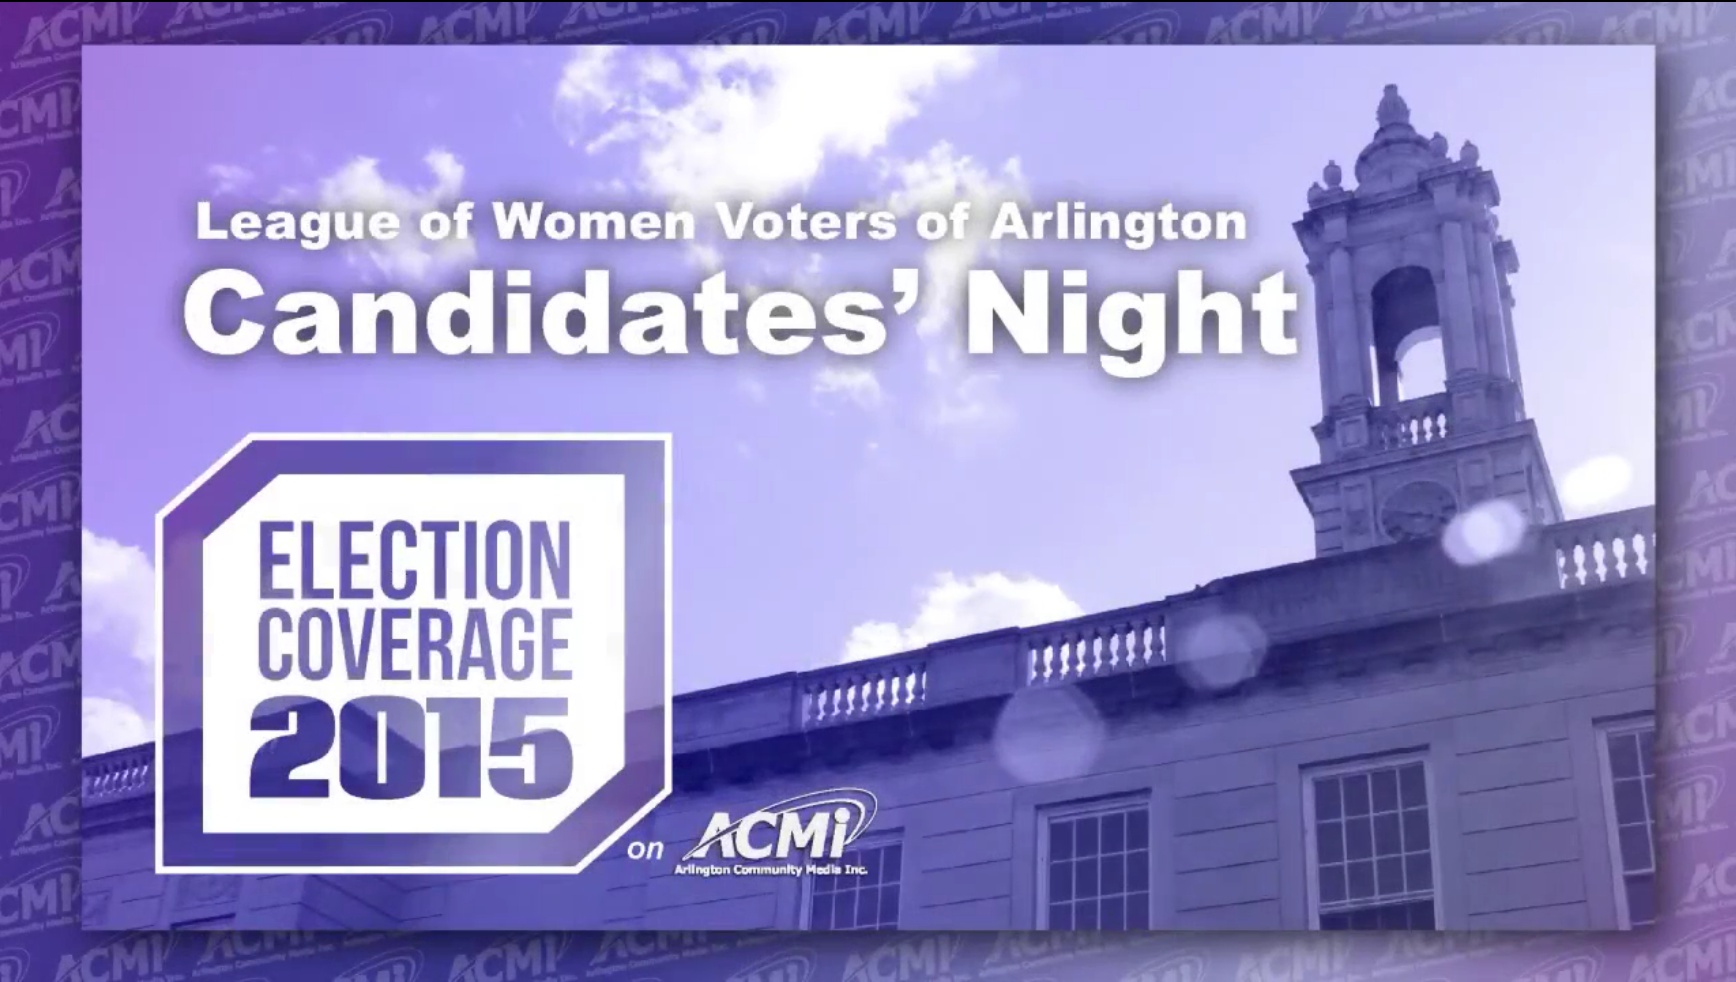 League of Women Voters: Arlington Candidate's Night 2015